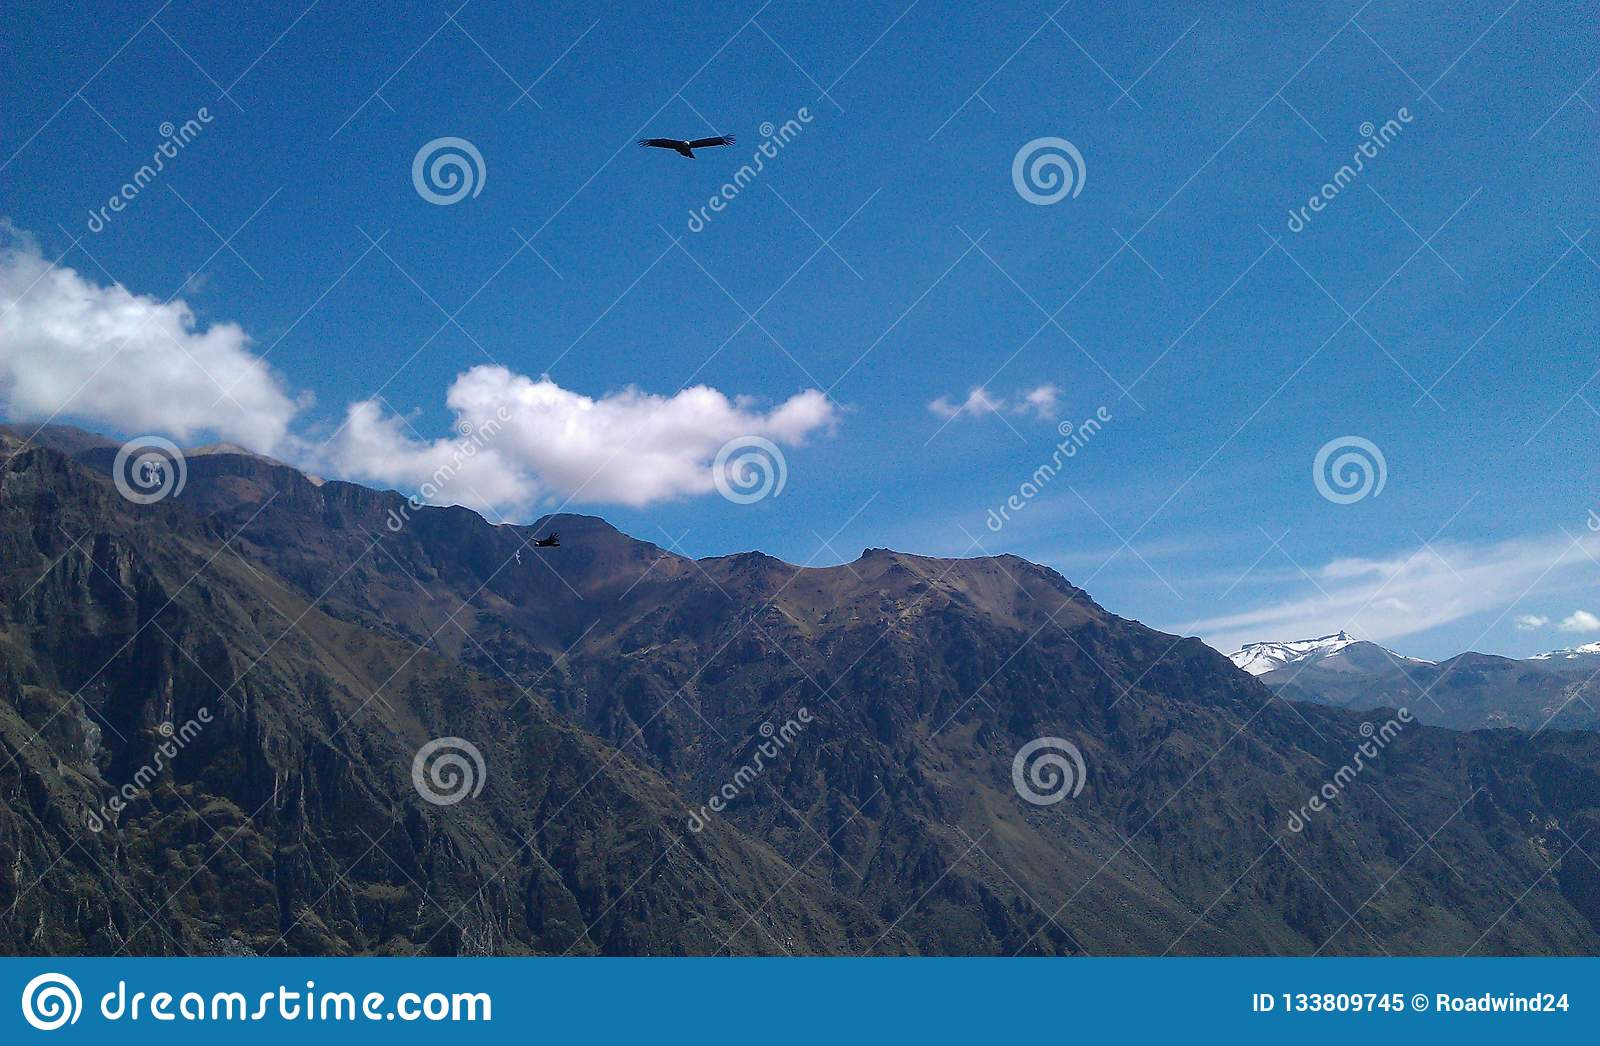 Condor flying above mountains